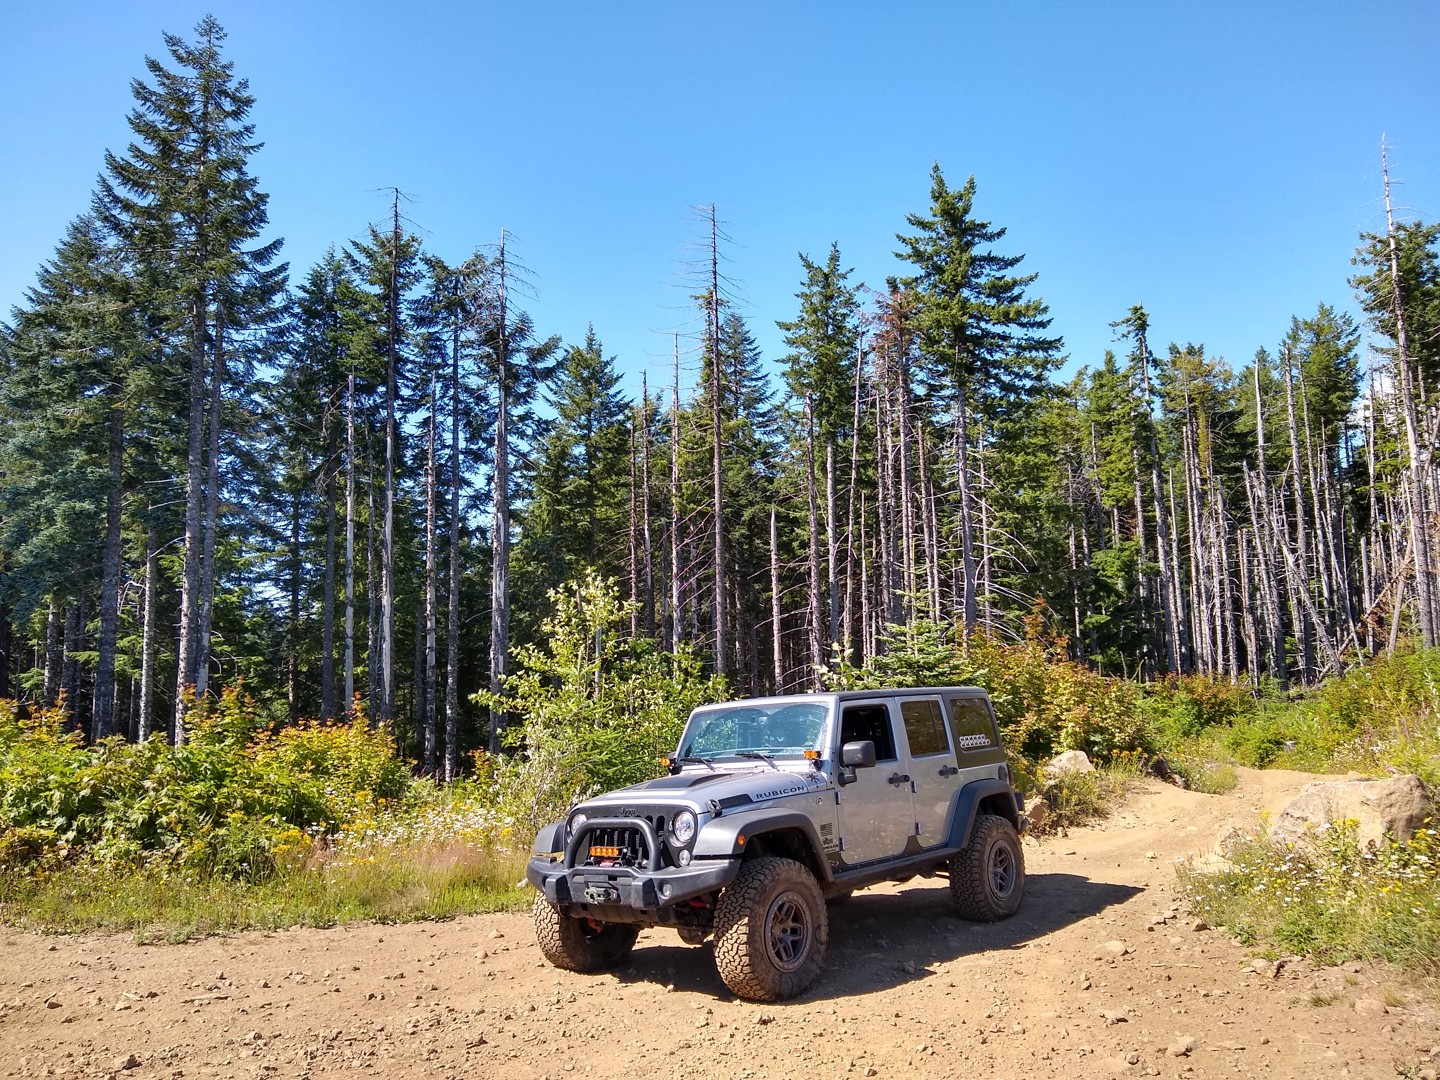 Trail Review: Firebreak Five / Tillamook State Forest